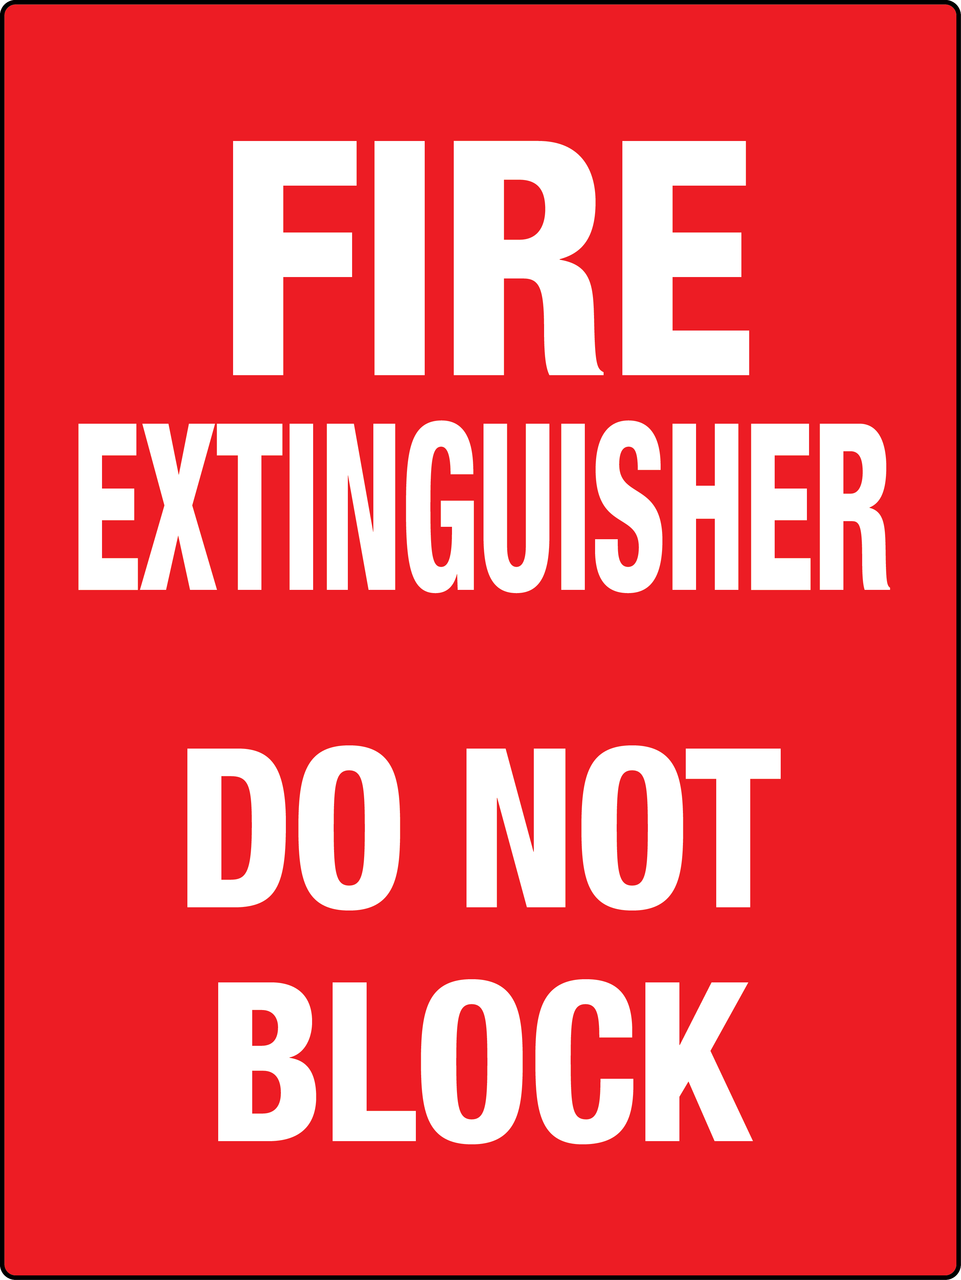 Fire Extinguisher Do Not Block Large Red Phs Safety